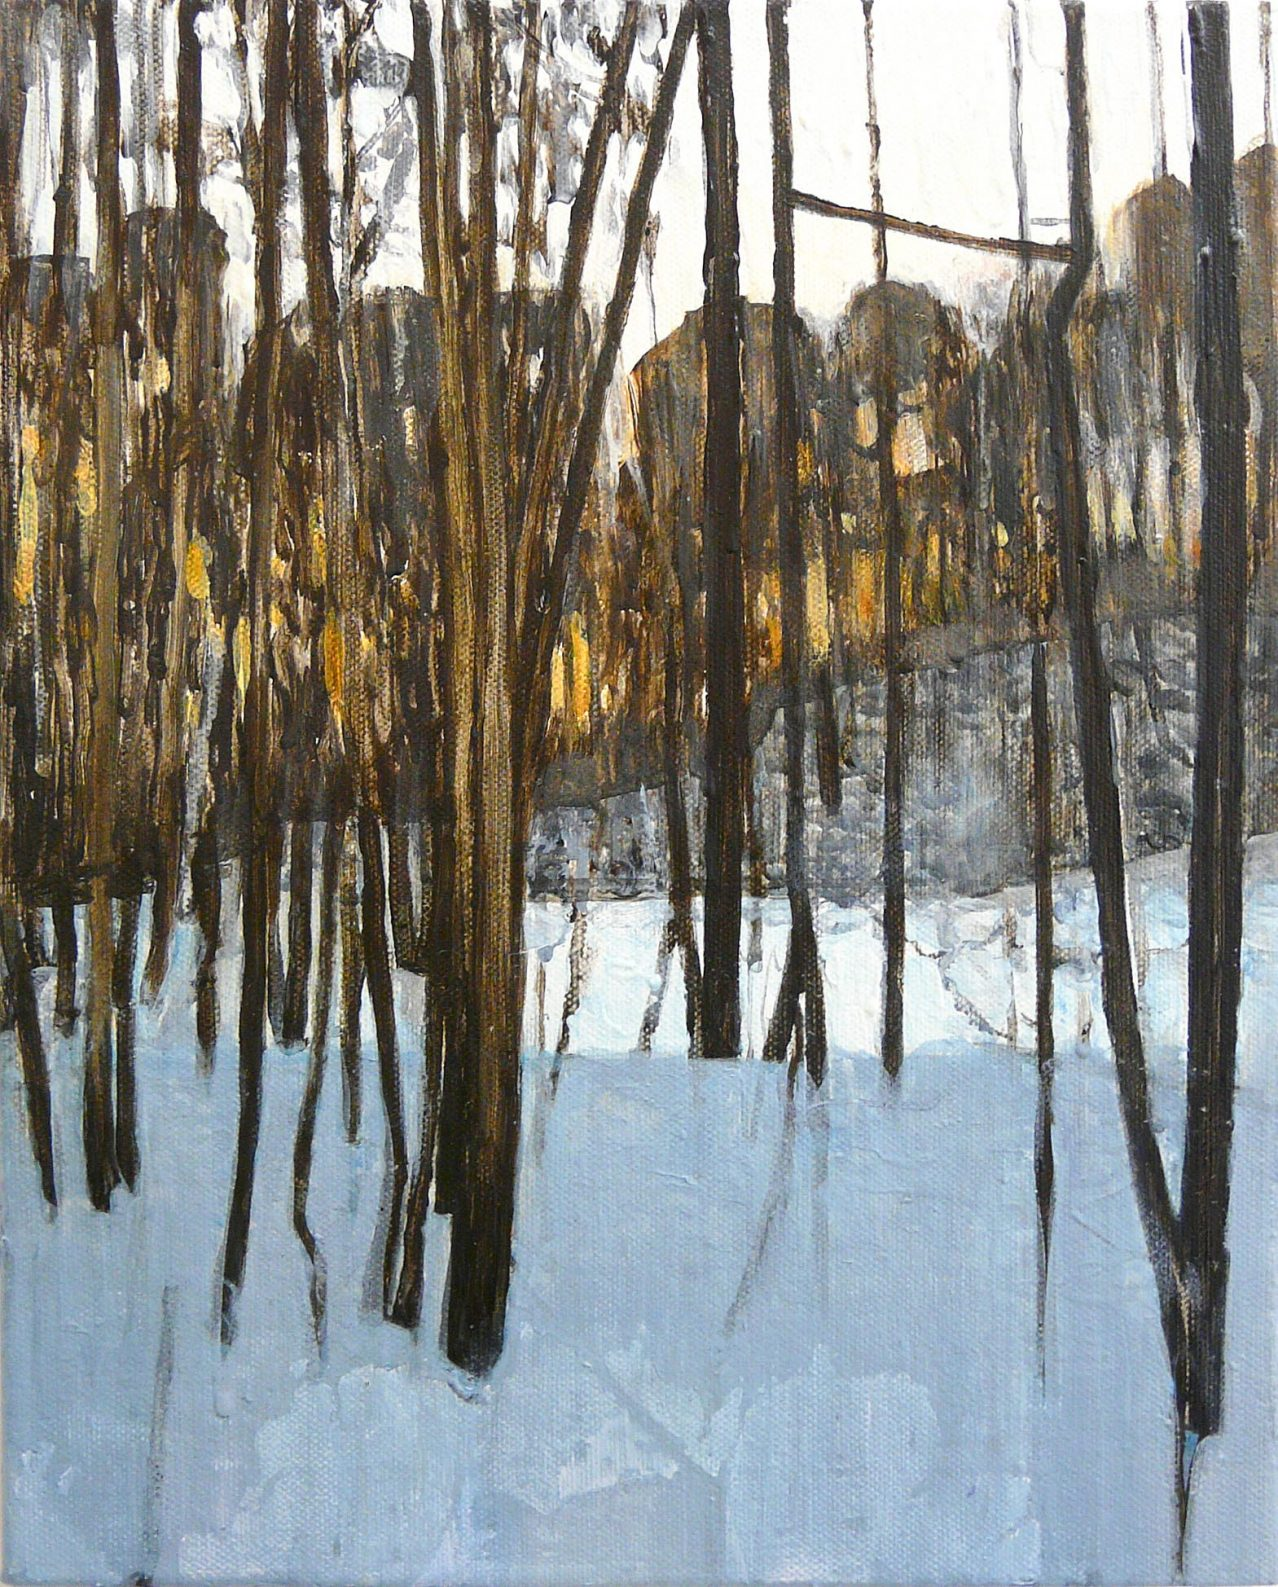 Outskirts Winter 1-5 201535cm x 28cm Acrylic canvas